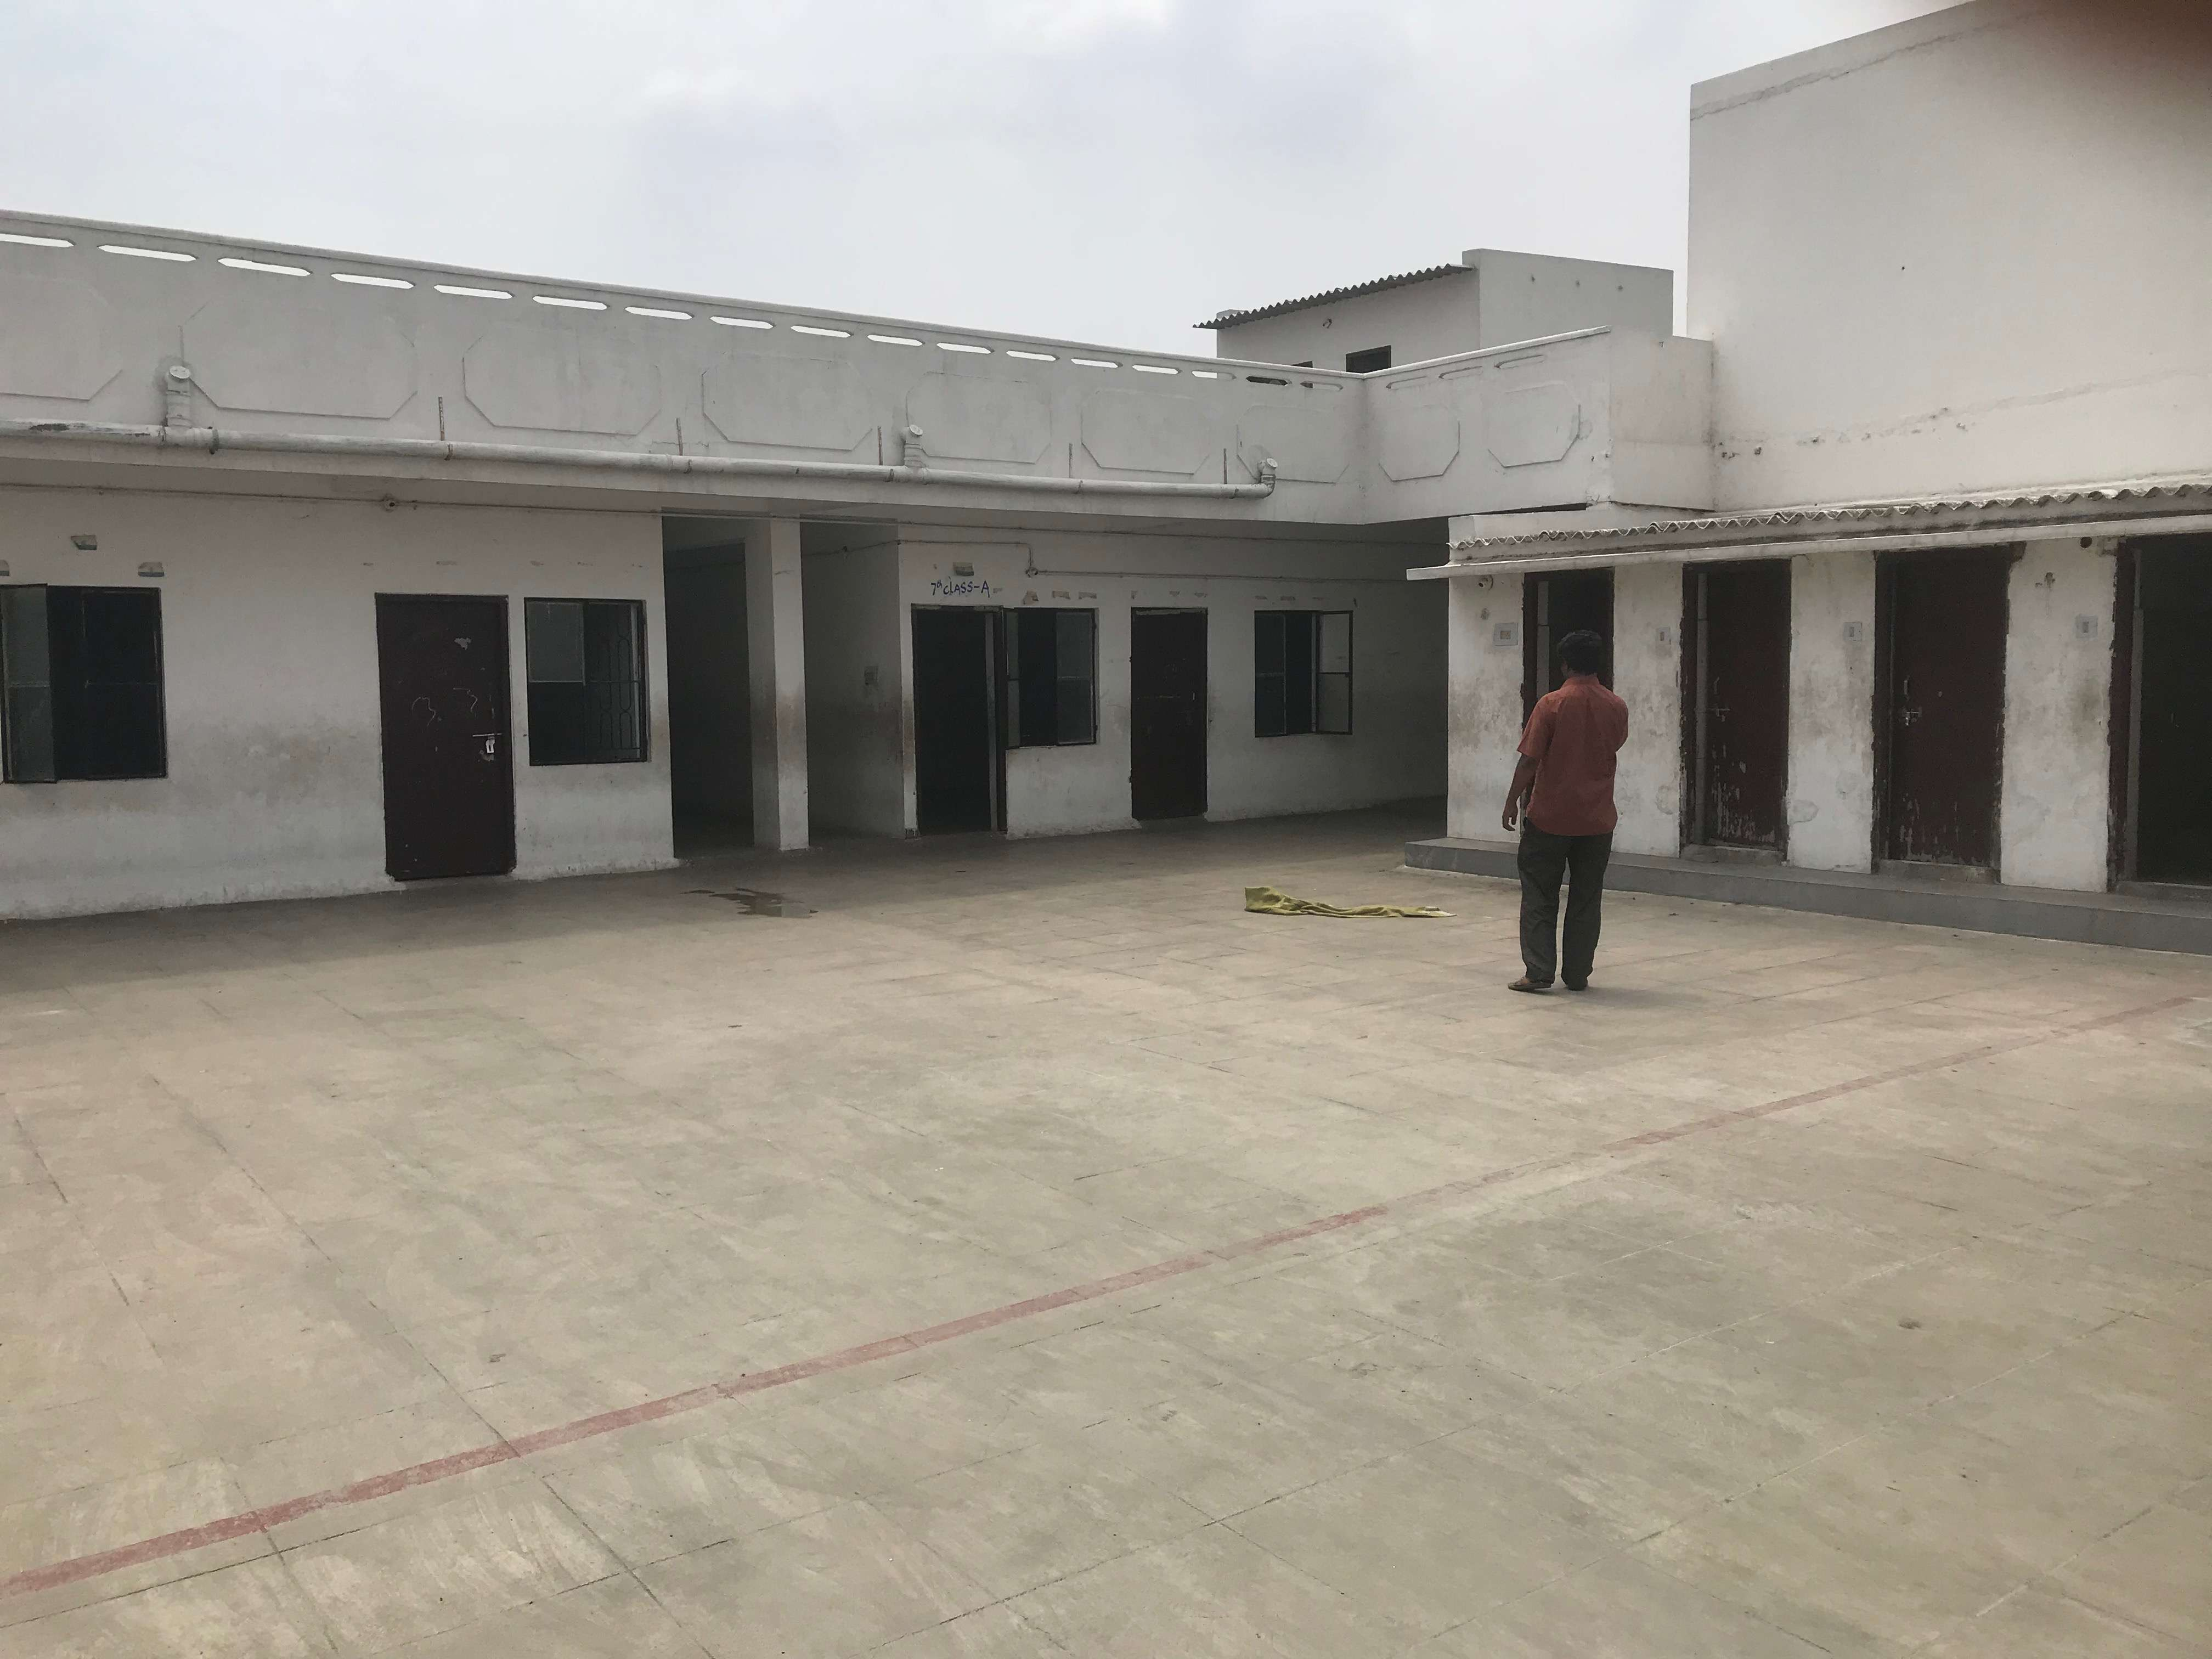 Commercial Space for Sale / Lease / Rent in Bapuji Nagar Hyderabad